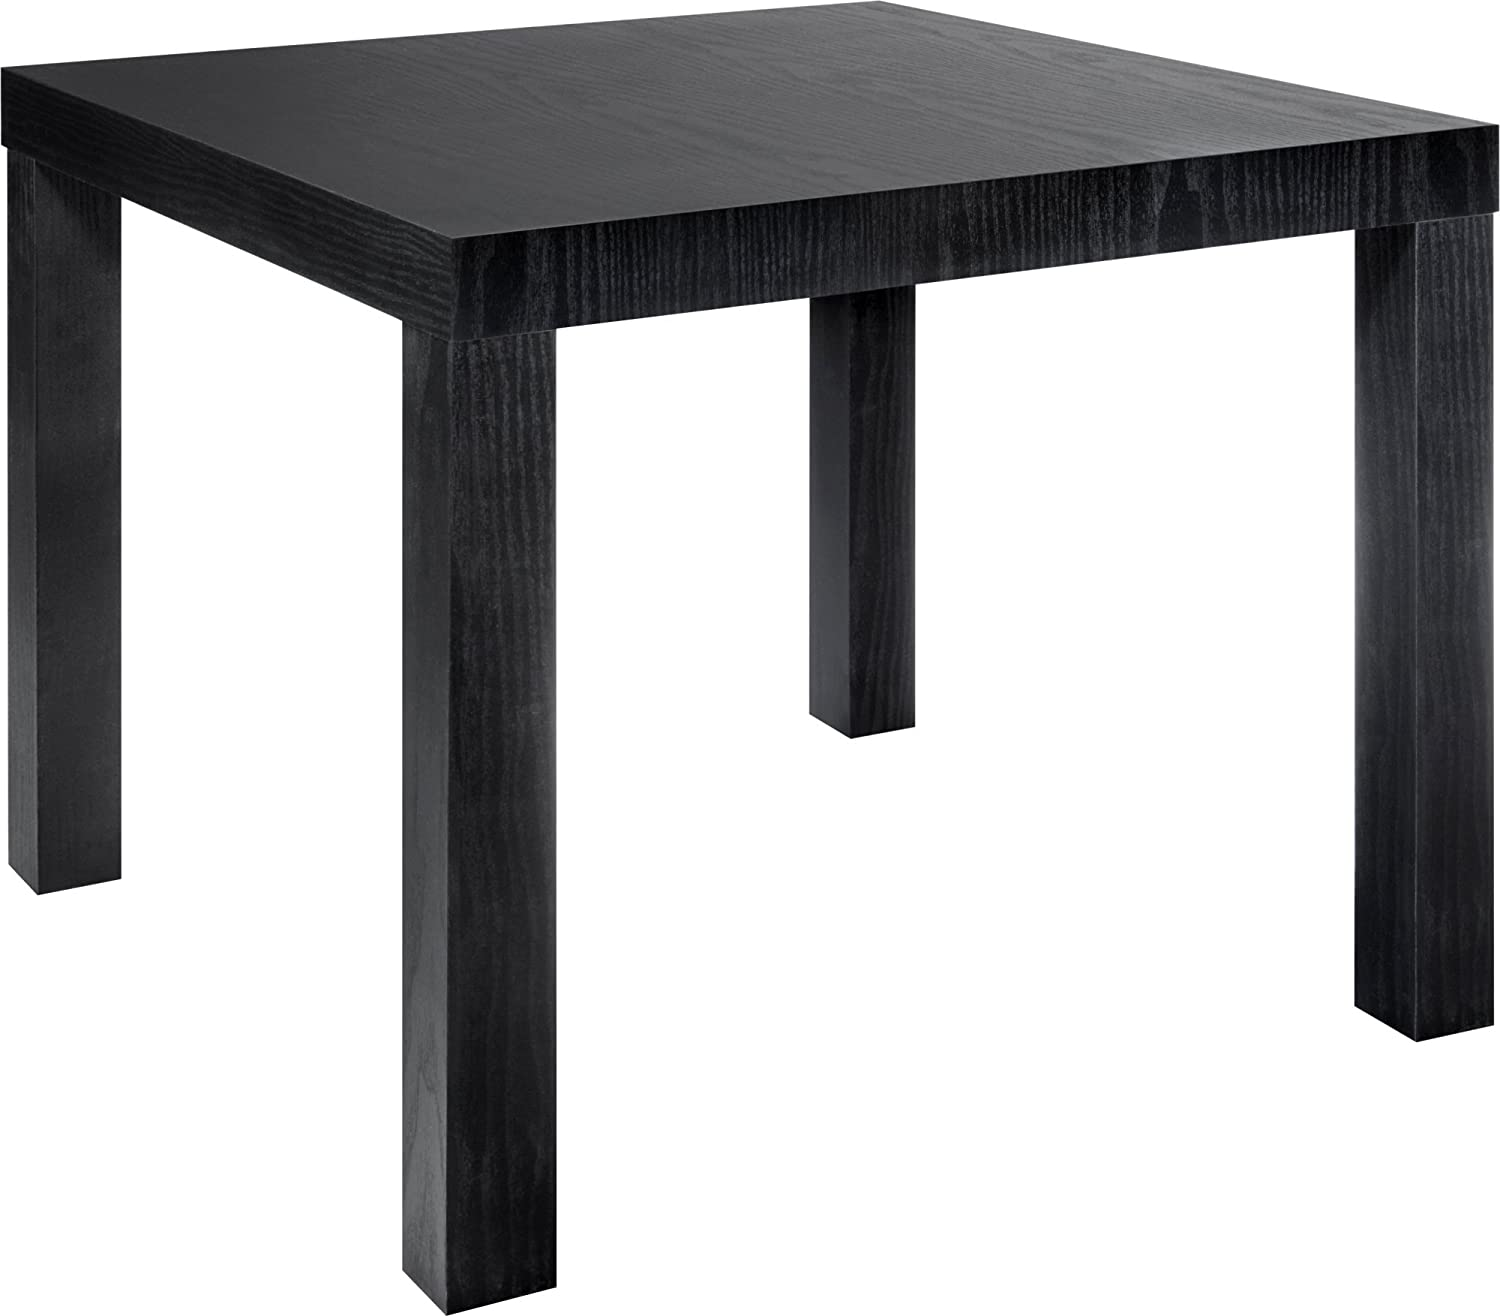 Black and wood coffee table - Amazon Com Dhp Parsons Modern End Table Black Wood Grain Kitchen Dining